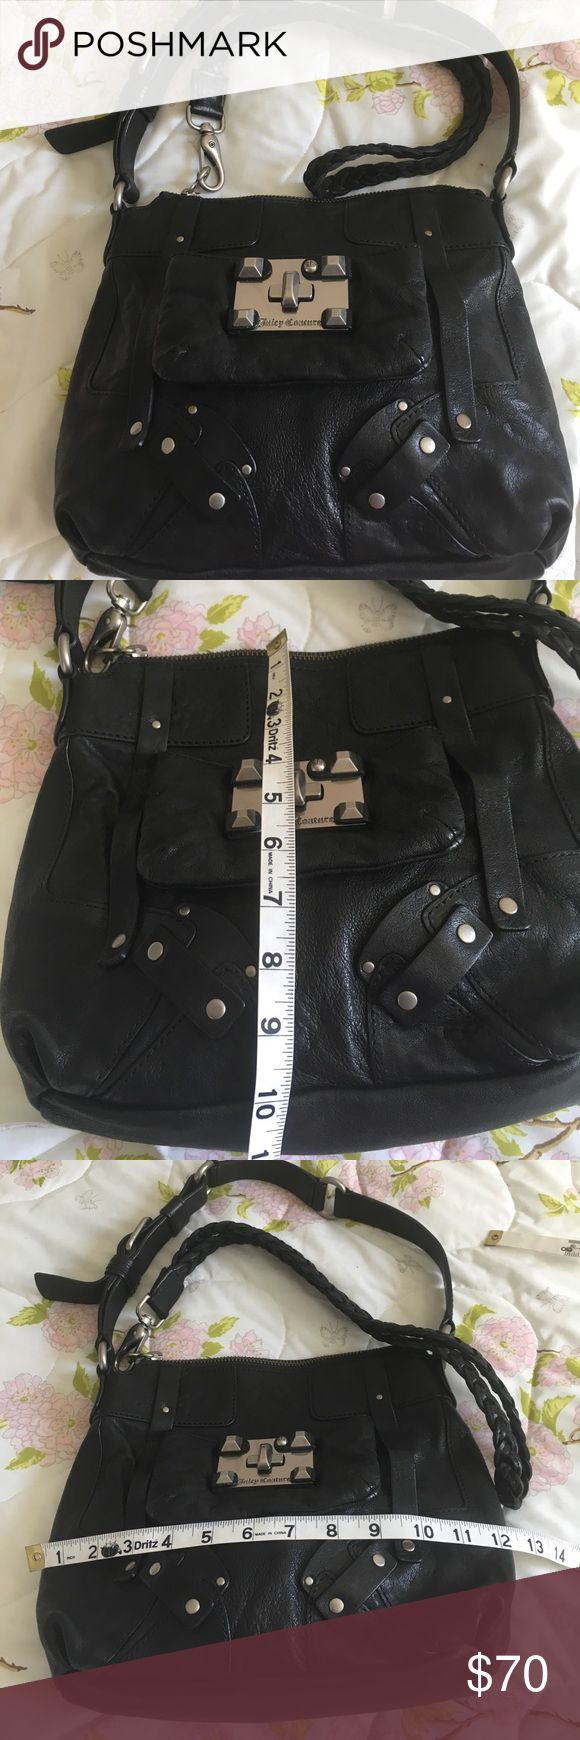 Juicy Couture Bag Used two times like new beautiful leather Bag. From smoke free home. Make me an offer Juicy Couture Bags